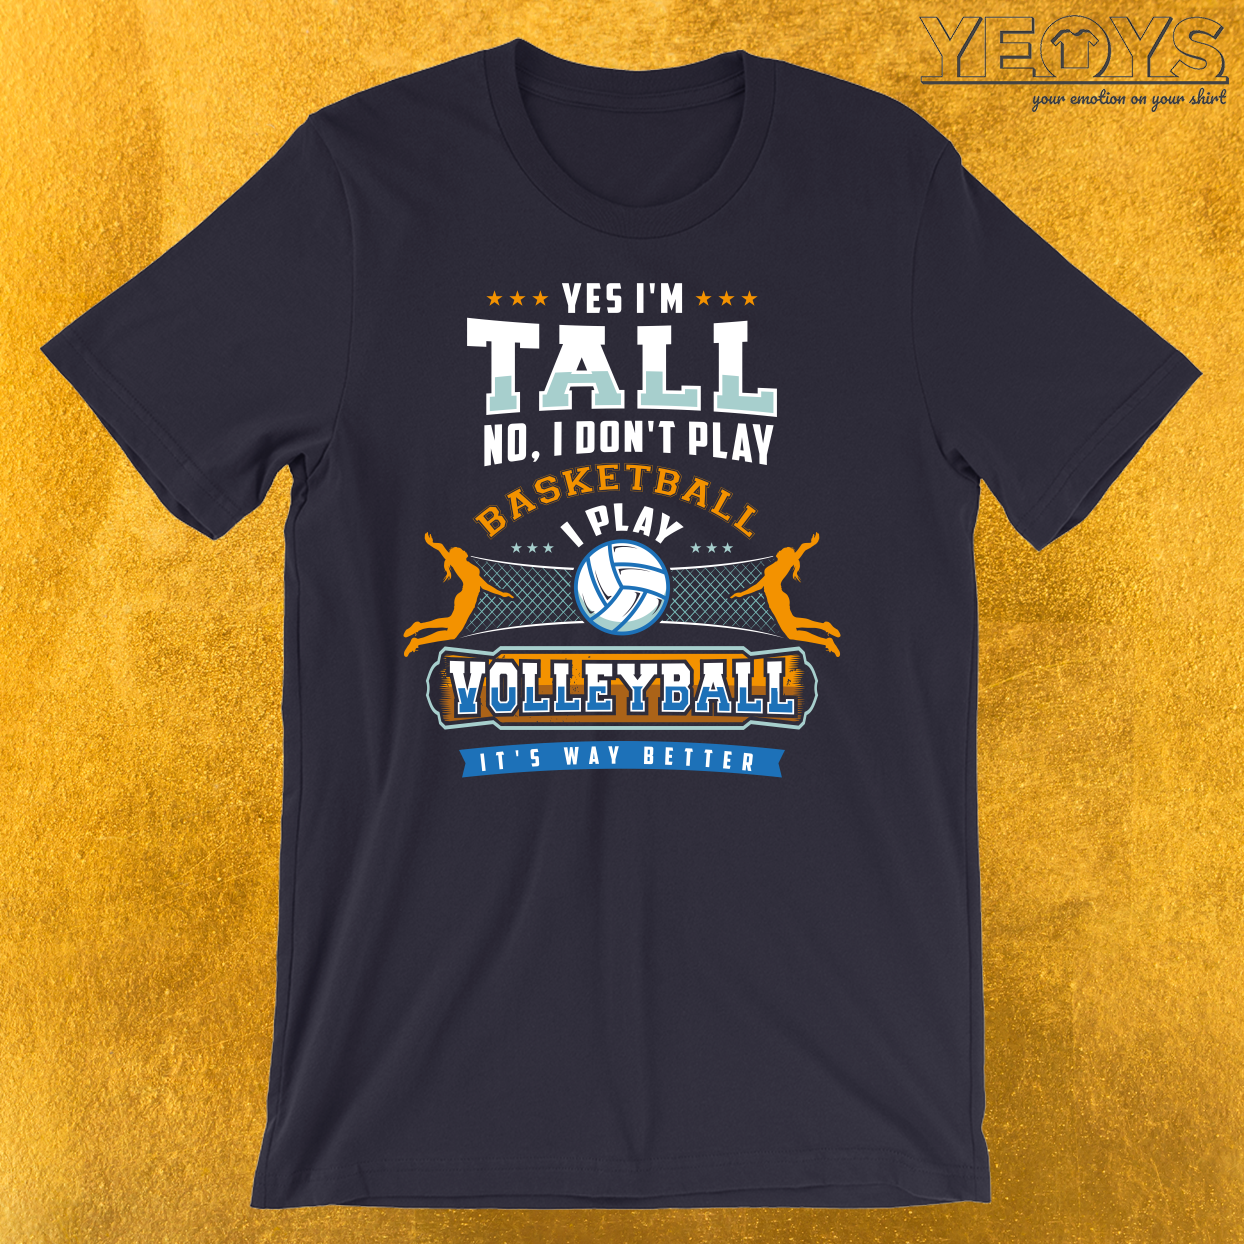 Yes I'm Tall No I Don't Play Basketball T-Shirt